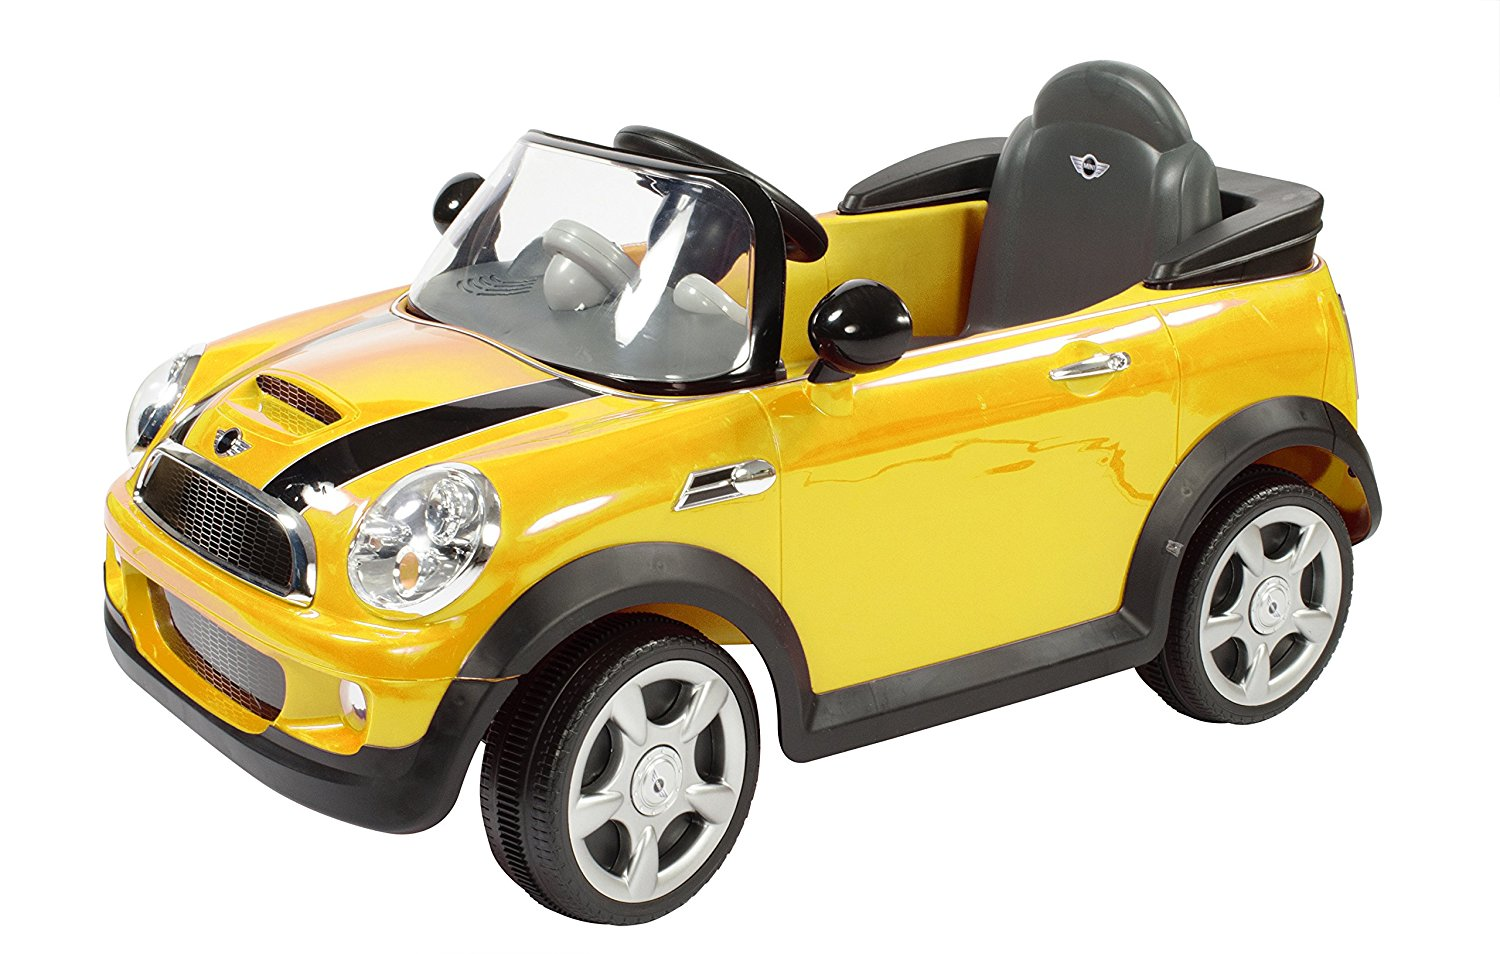 Mini Cooper Ride on Toy